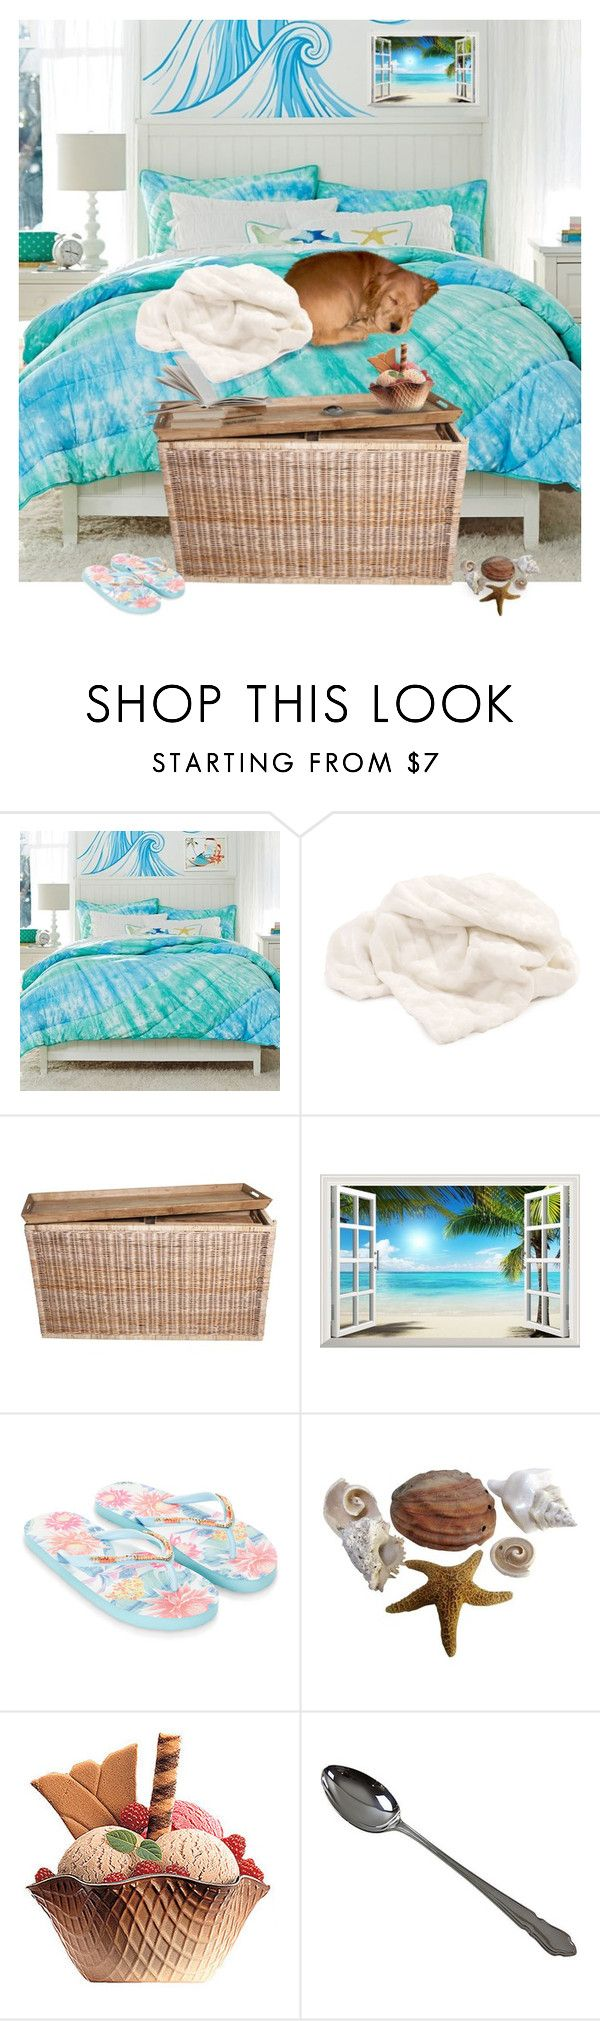 Home decor collage from january 2017 featuring currey company -  Sleepy Time Beach Time By Alara Cary Liked On Polyvore Featuring Interior